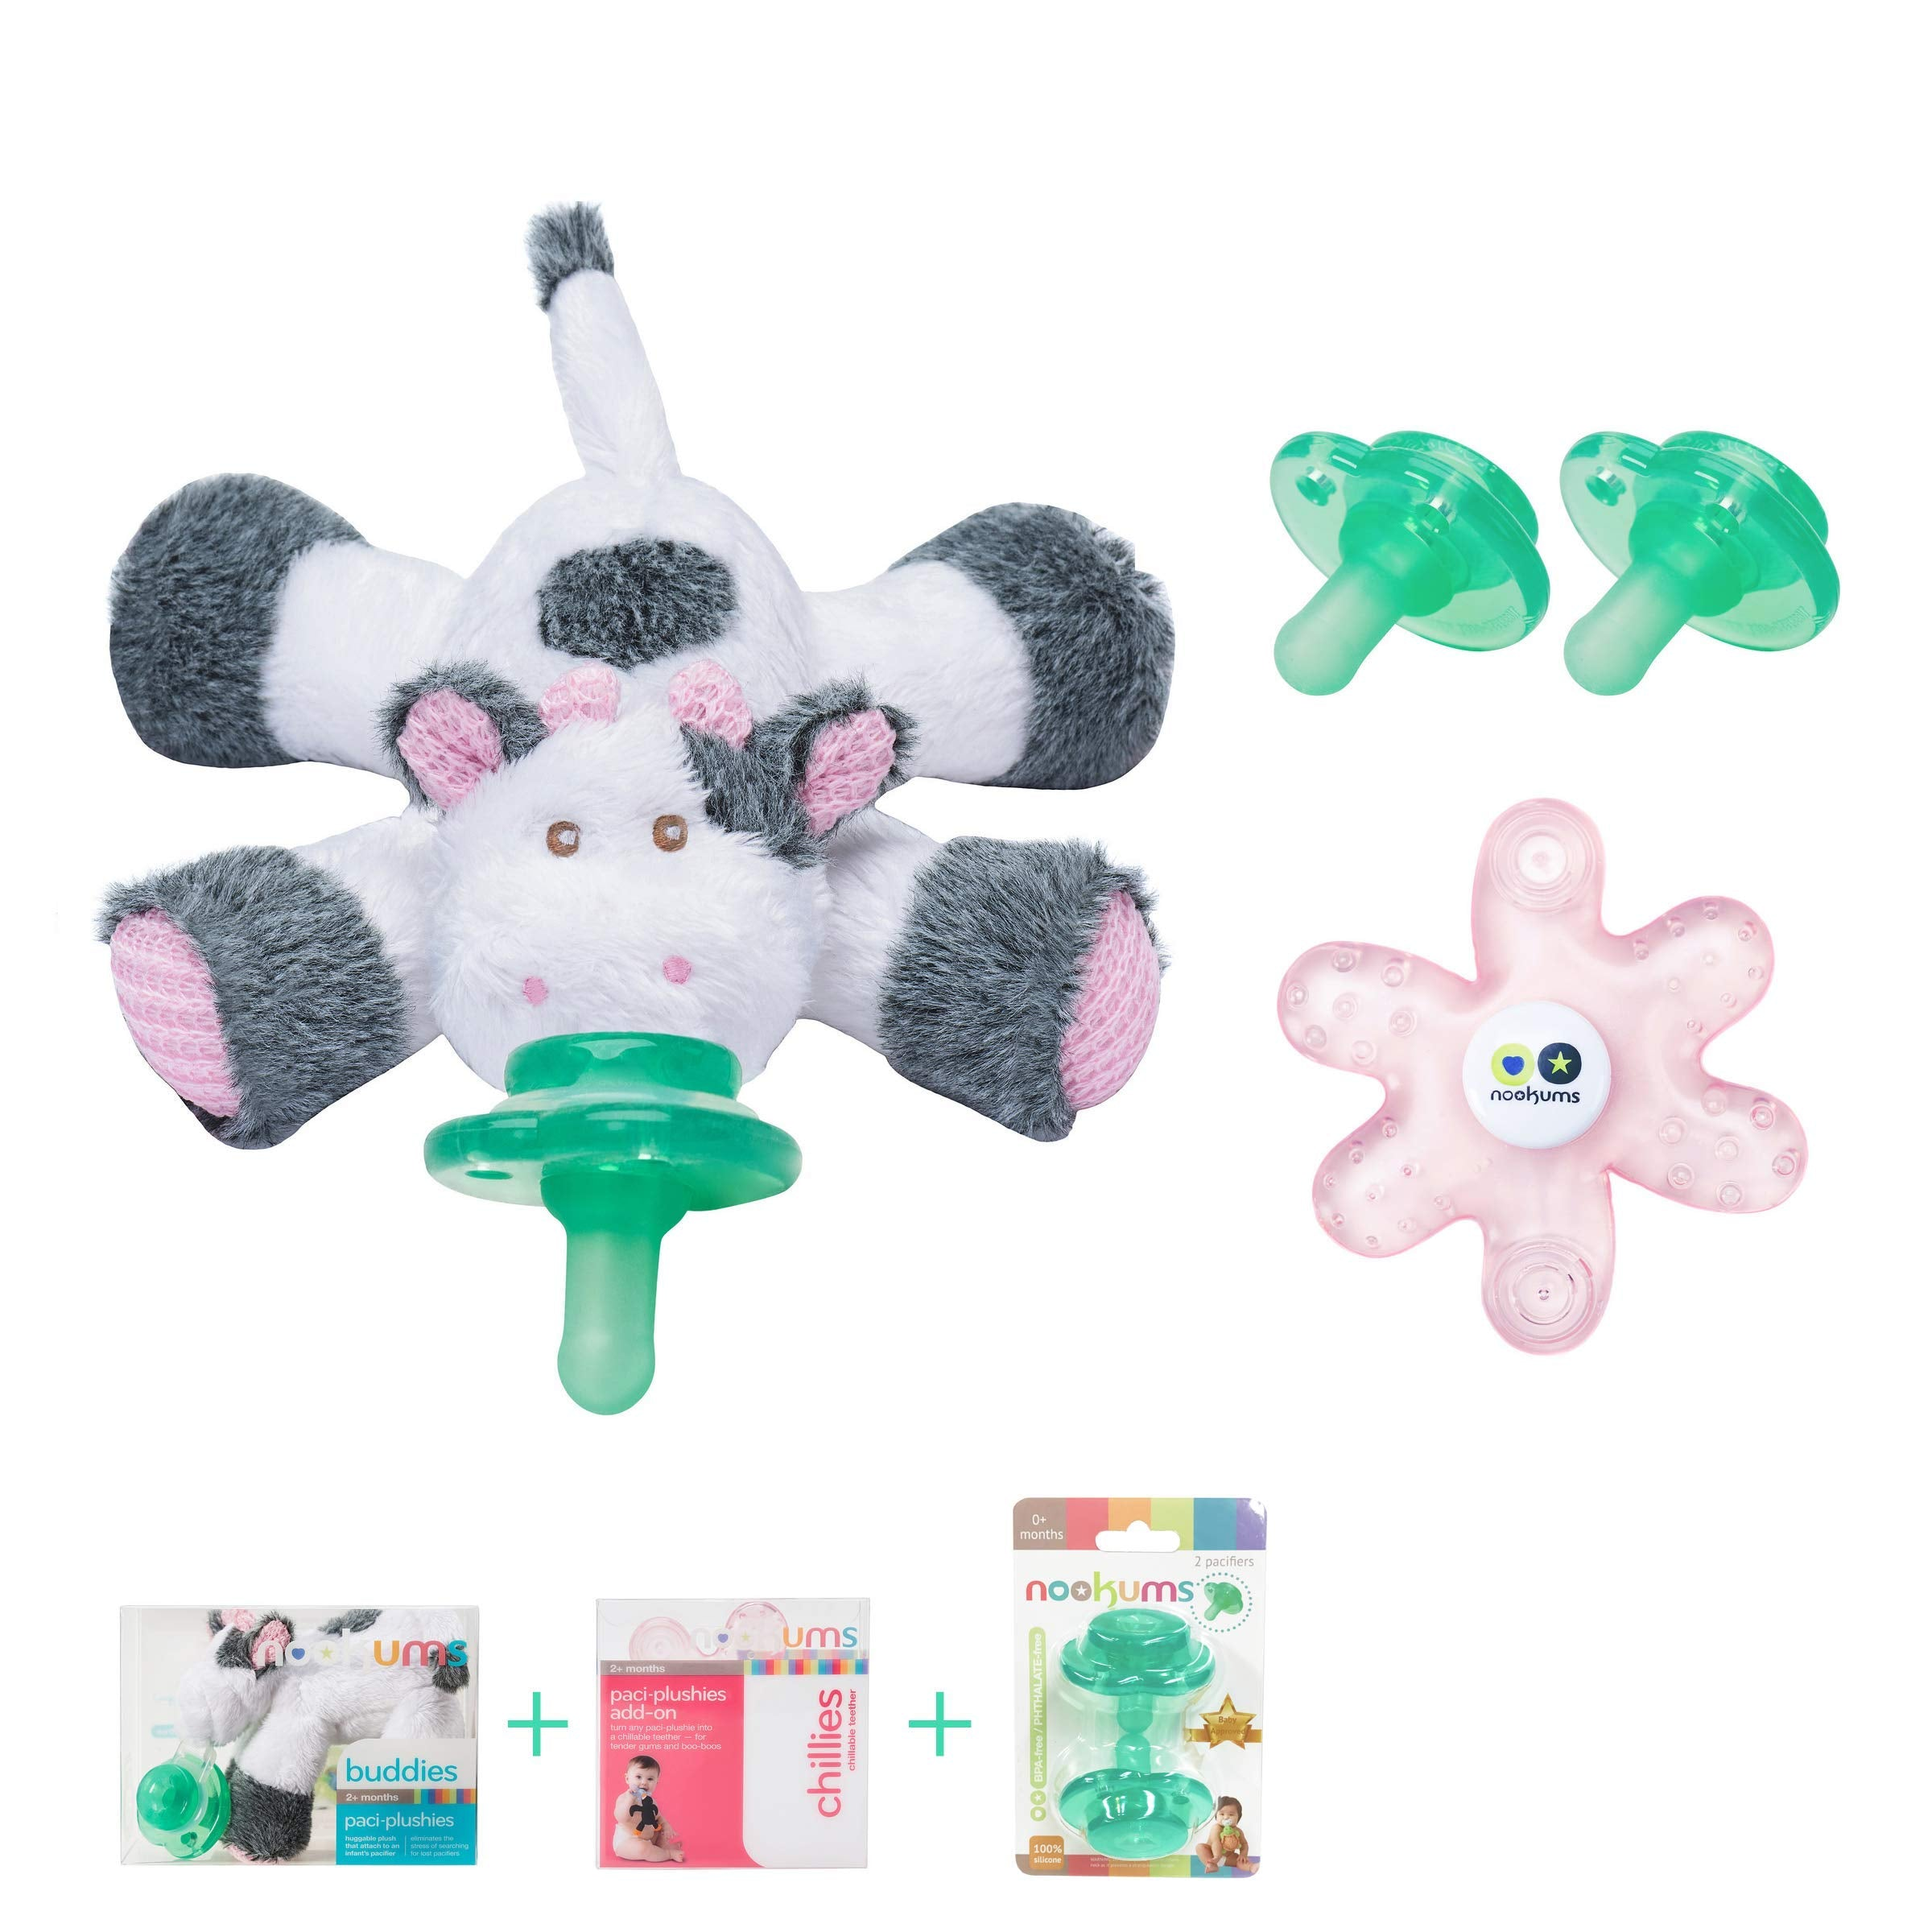 Includes 4 Green Pacifiers Nookums Paci-Plushies Replacement Pacifier 4 Pack